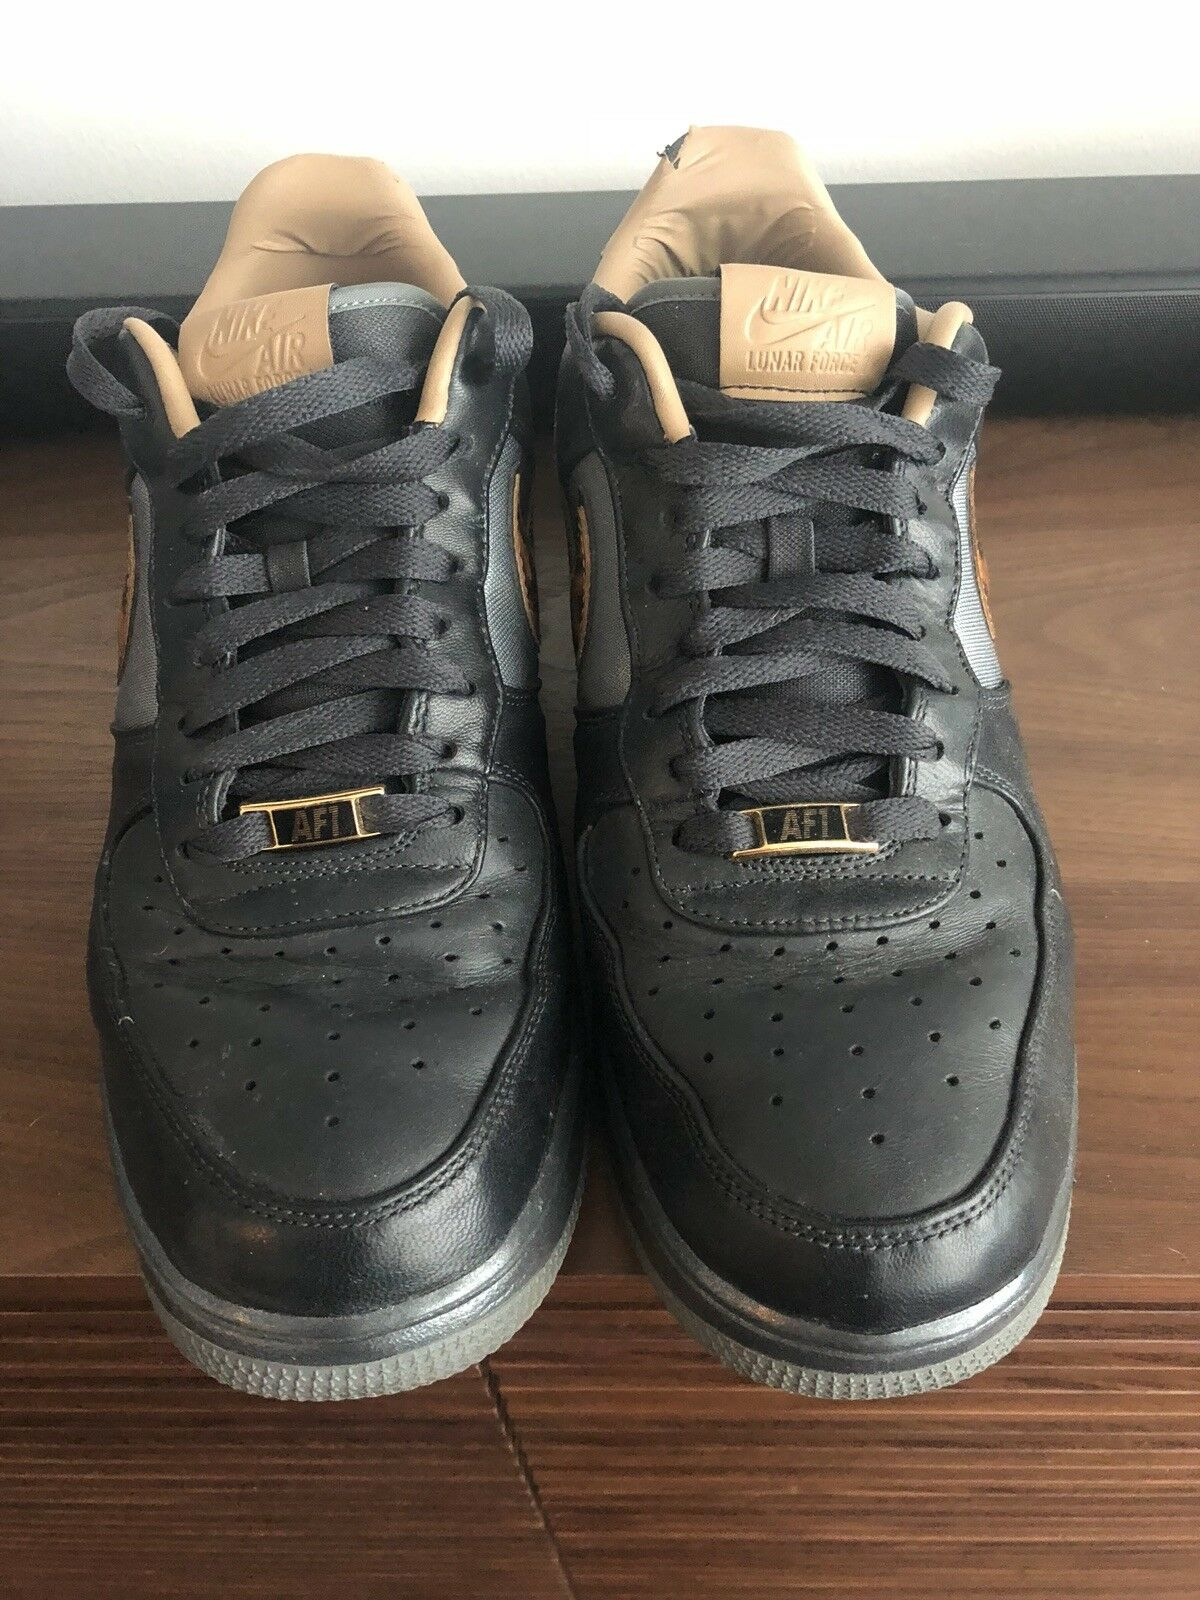 Nike Lunar Force 1 City QS (mens 10.5) Milan City Pack Exclusive Collection Fire